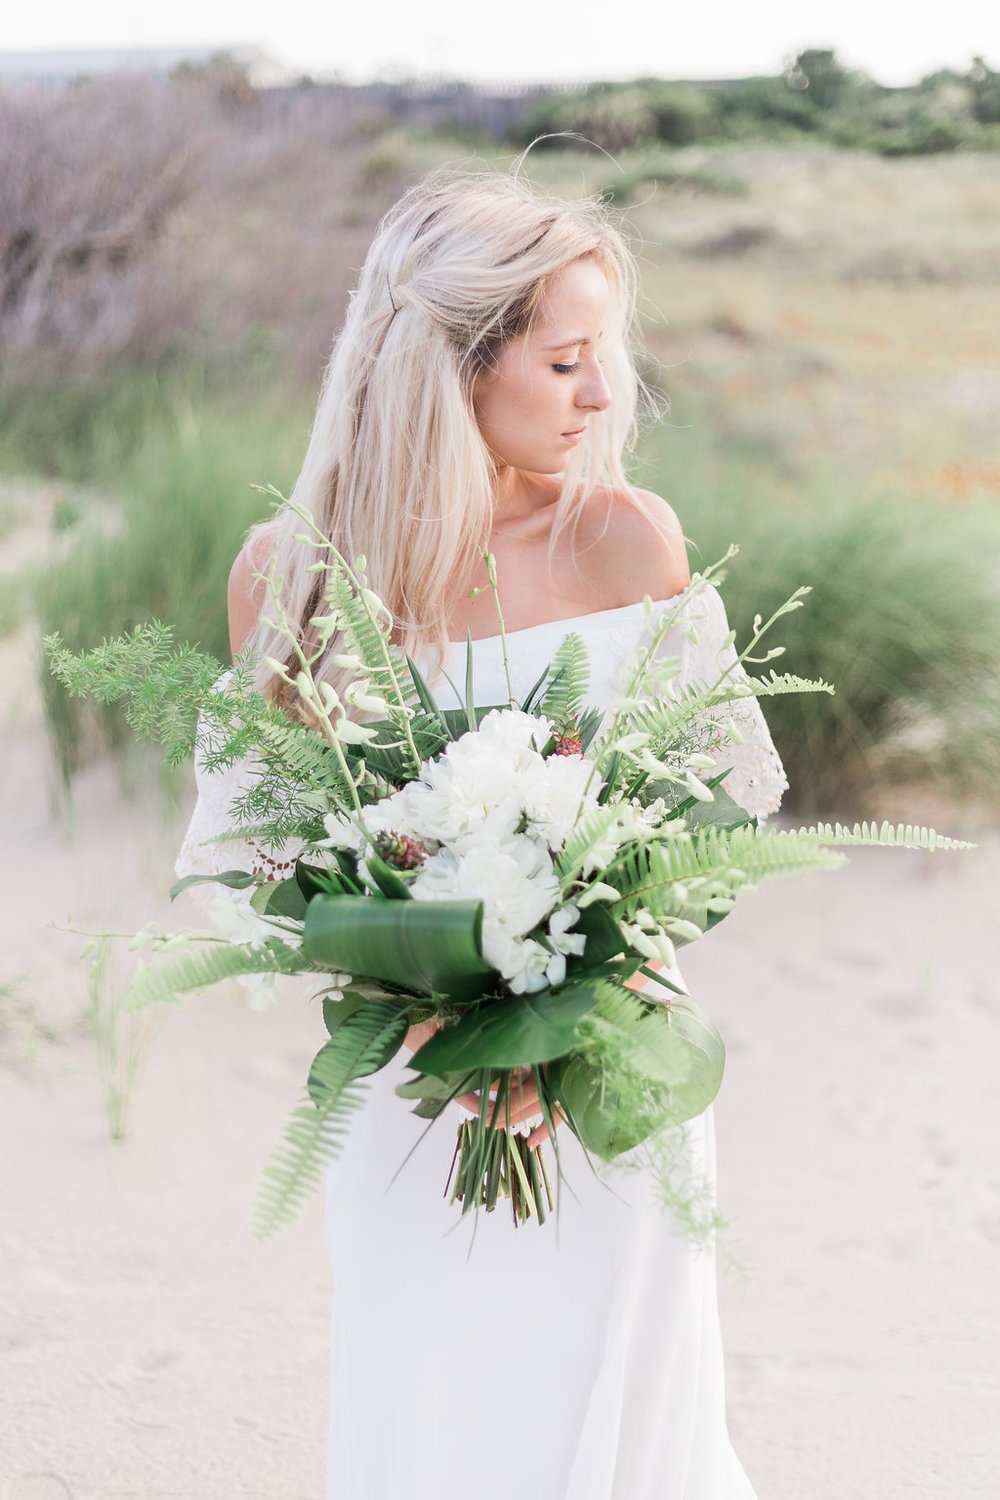 savannah-bridal-shop-last-minute-wedding-planning-details-you-should-start-on-NOW-bluebell-photography-daughters-of-simone-tybee-island-wedding-7.jpg